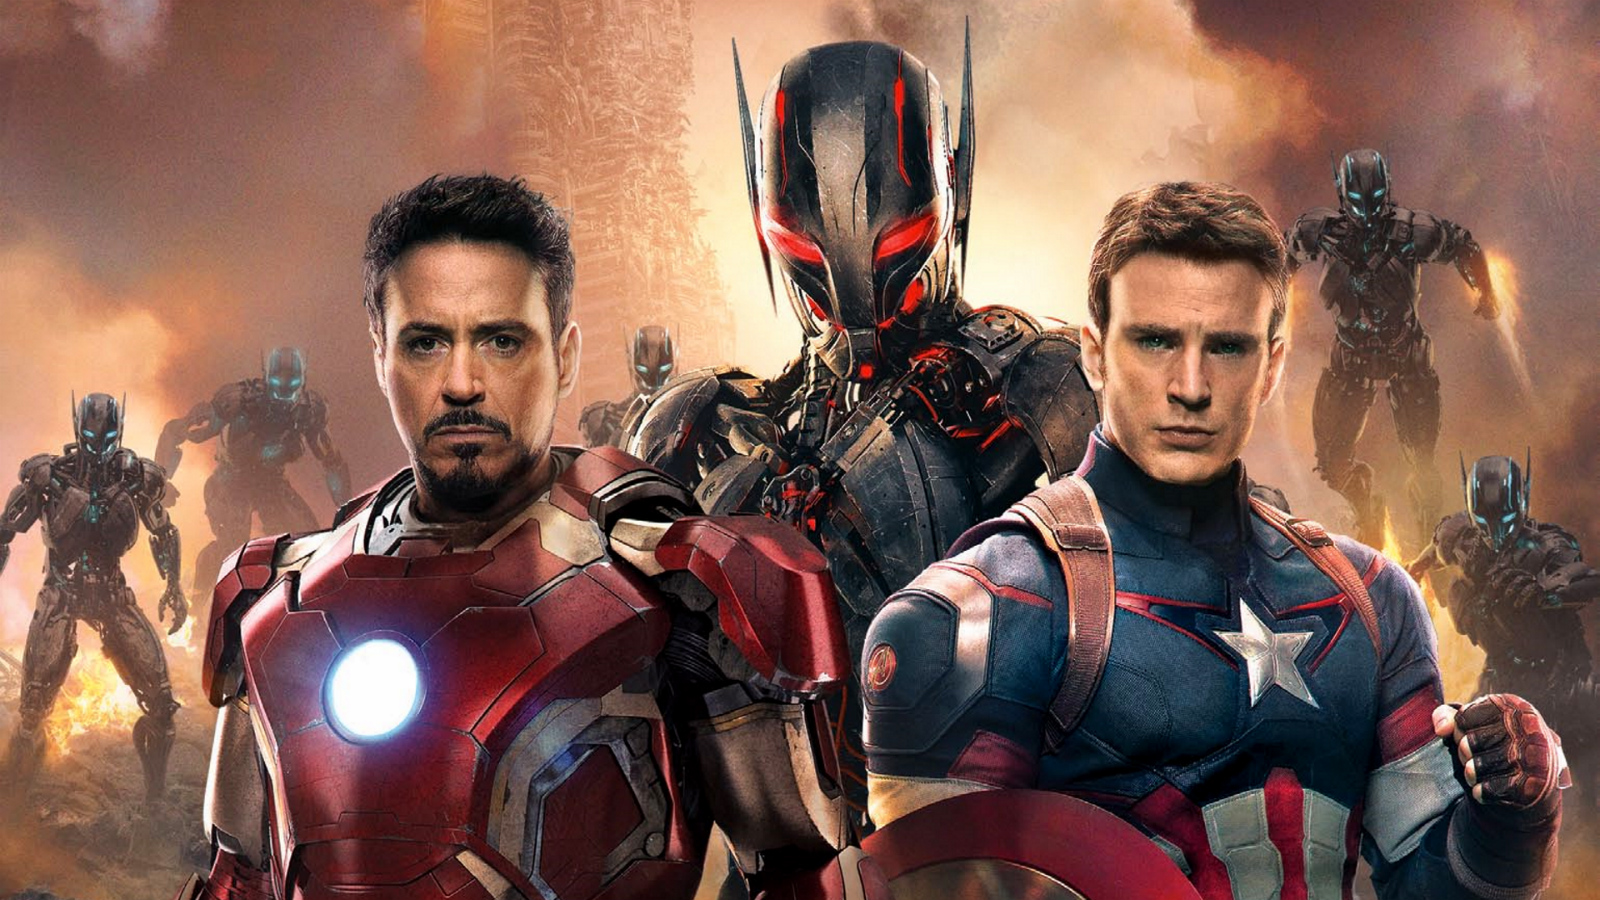 Avengers: Age of Ultron First Trailer to Premiere on Disney XD.